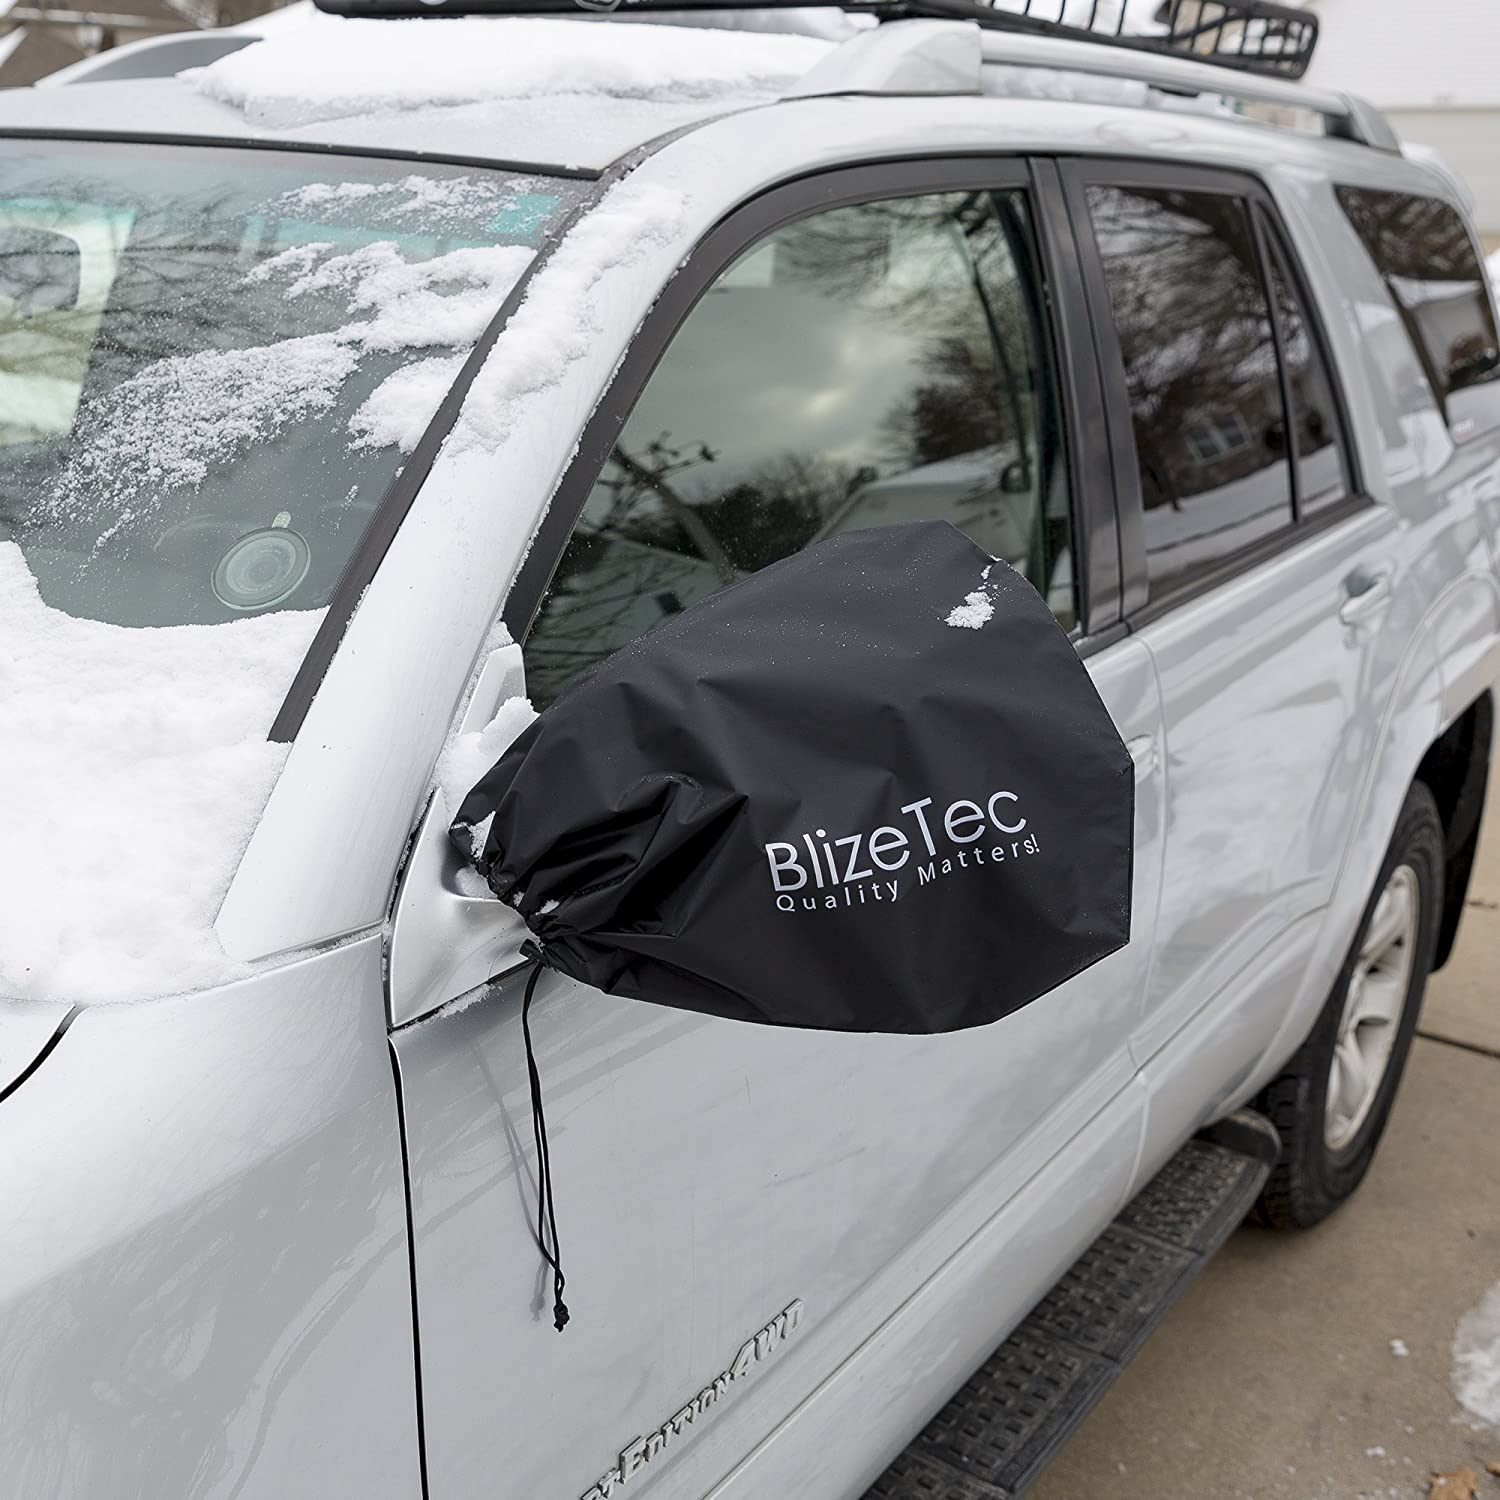 Car Side View Mirror Covers: BlizeTec Rain Ice and Snow Protectors; Universal Design to Fit Most Car 4 pcs Suv and Van